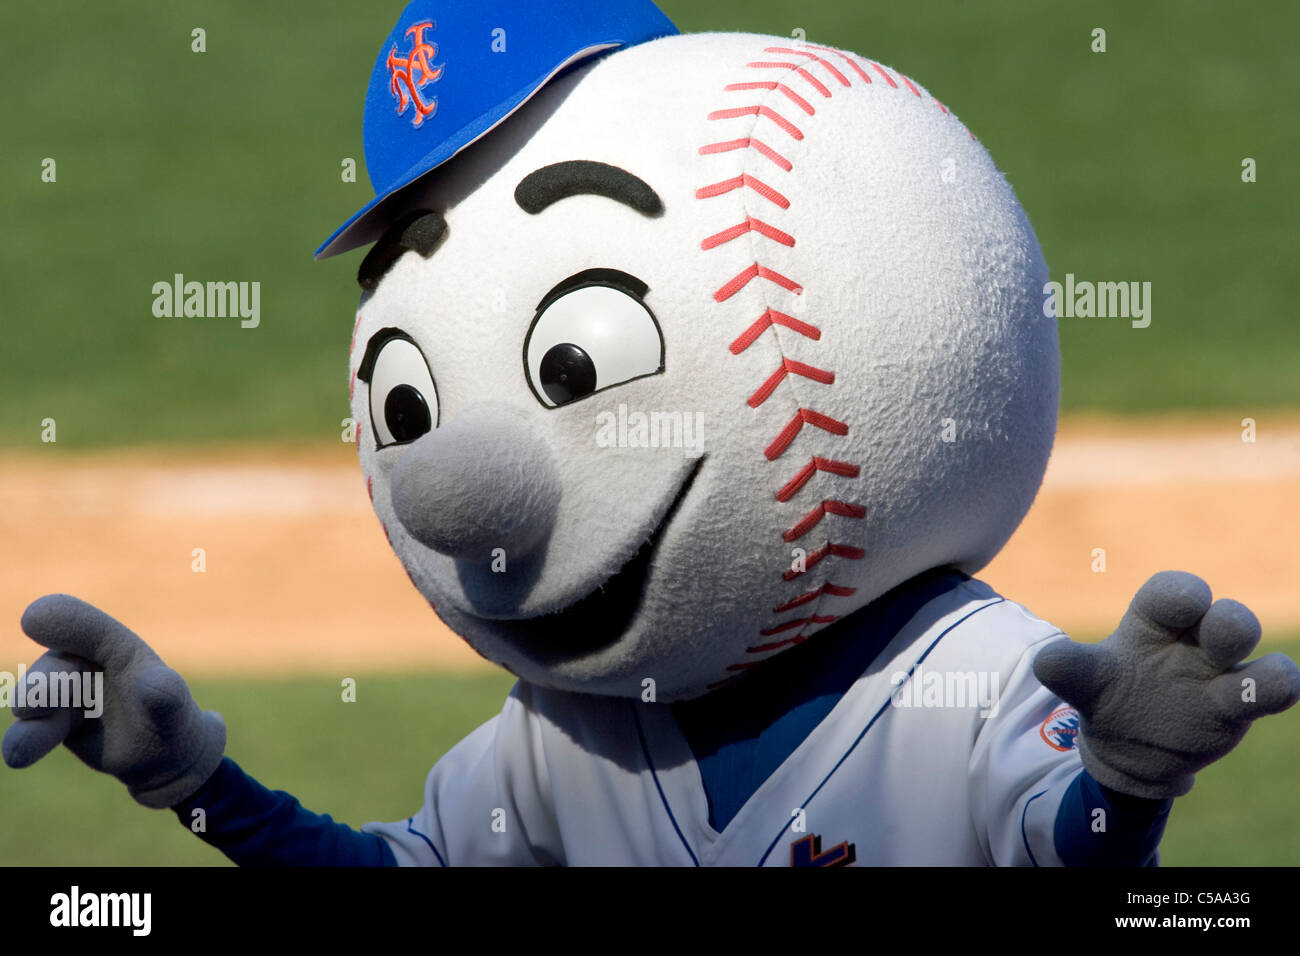 Mr Met during the Houston Astros at New York Mets game Shea Stadium, New York. - Stock Image